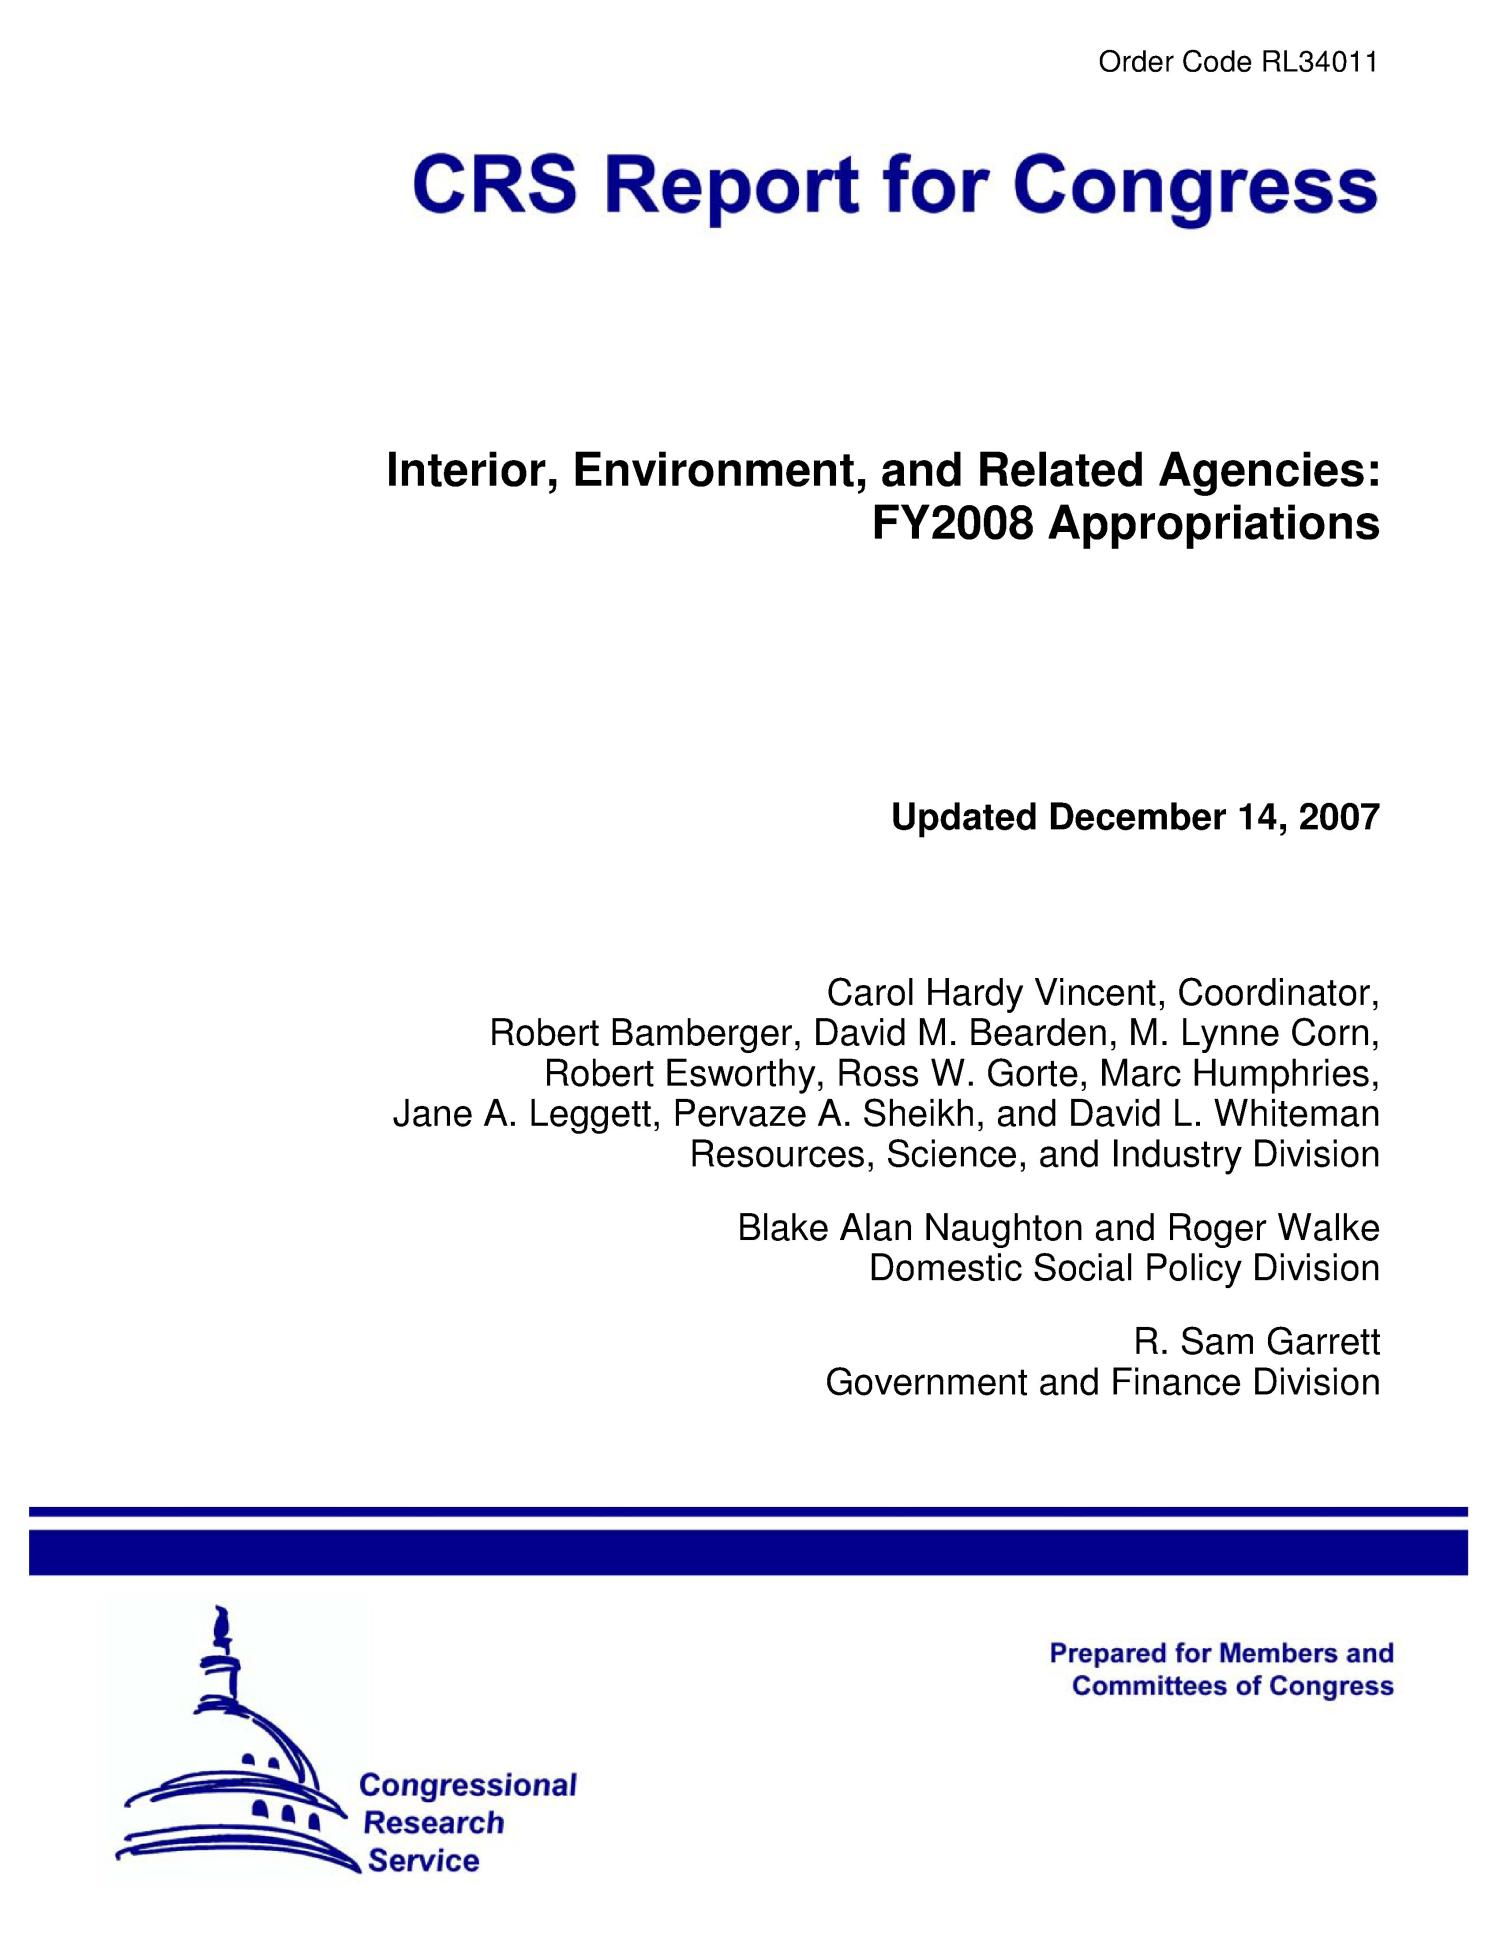 Interior, Environment, and Related Agencies: FY2008 Appropriations                                                                                                      [Sequence #]: 1 of 88